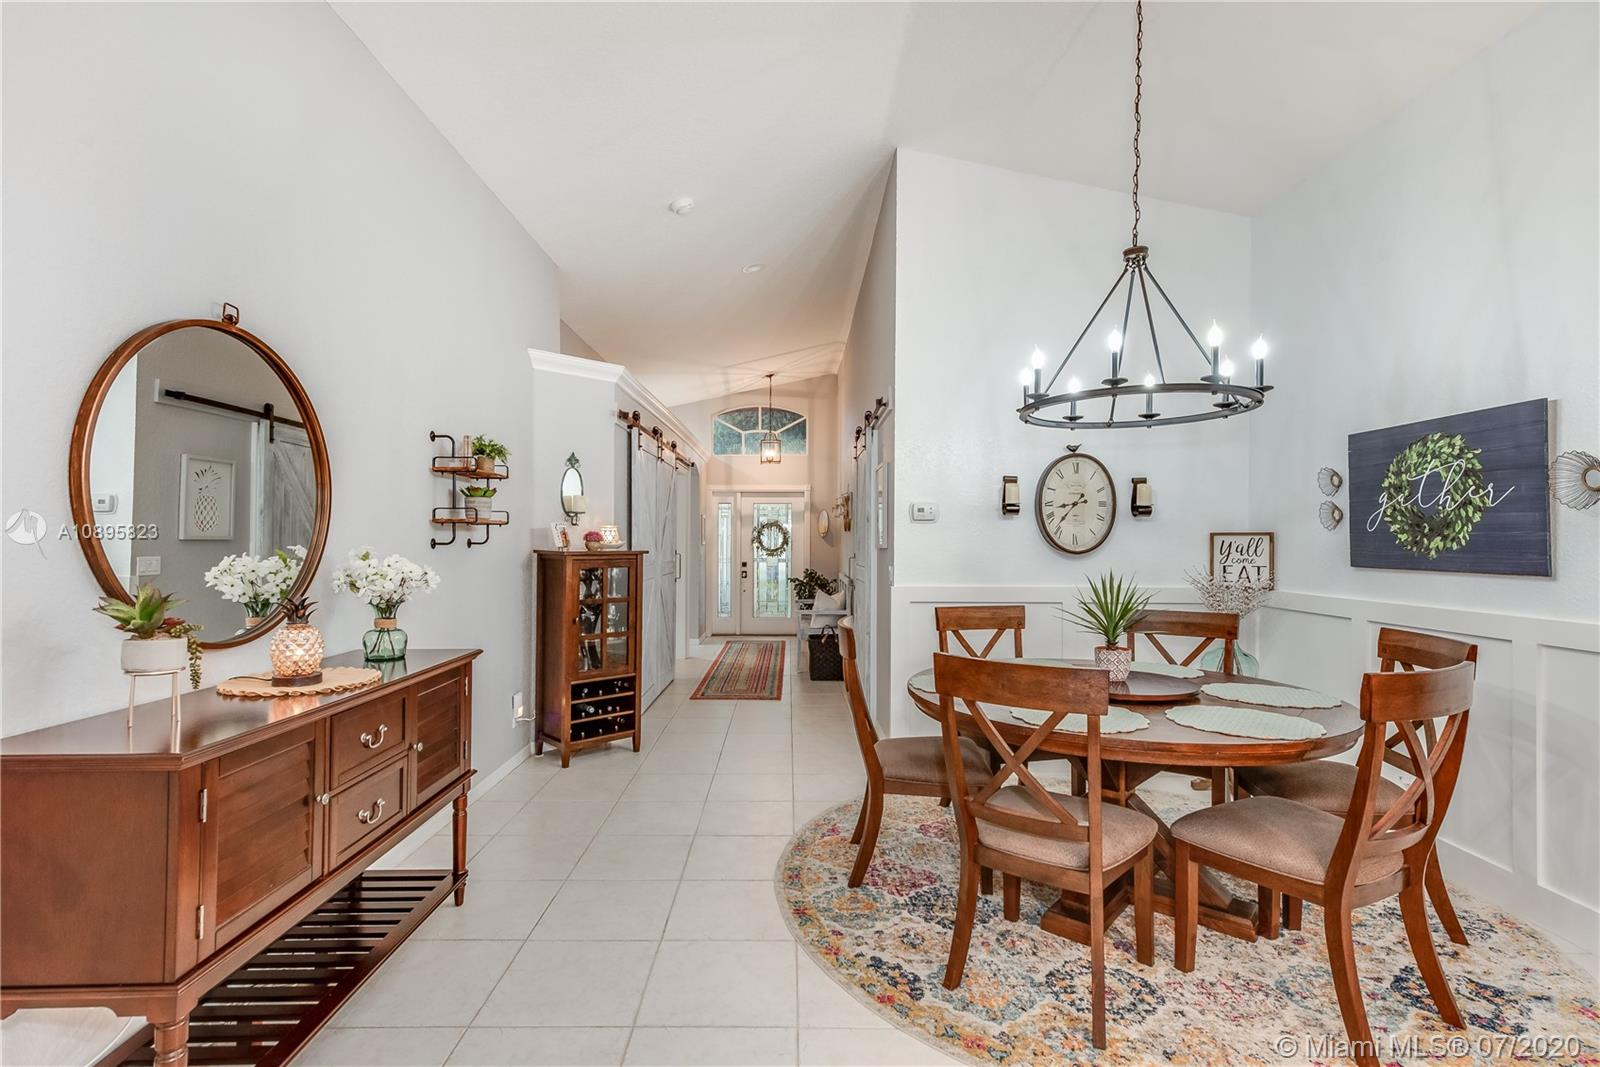 Oversized dining area with Wains Cotting